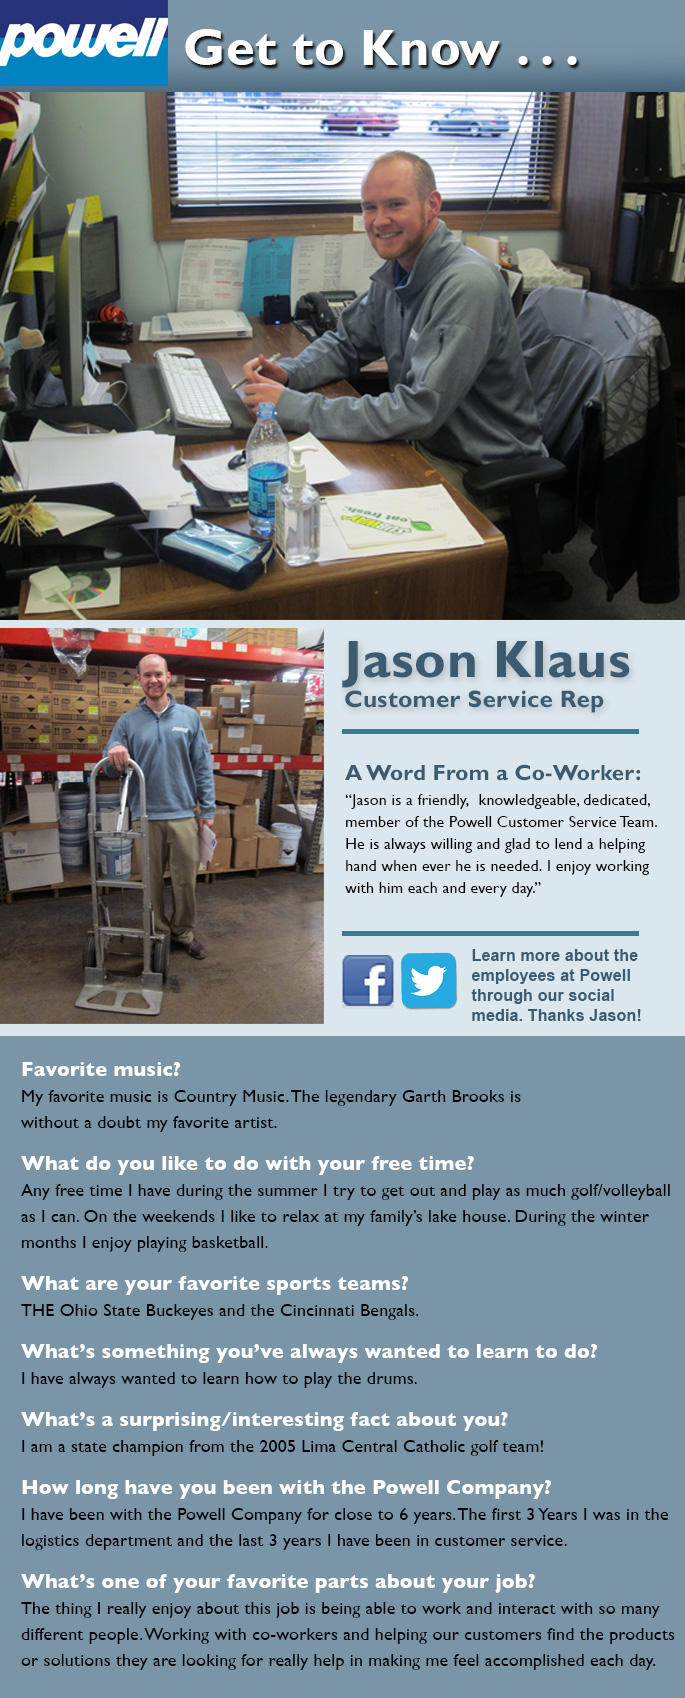 3-15 get to know Jason Klaus